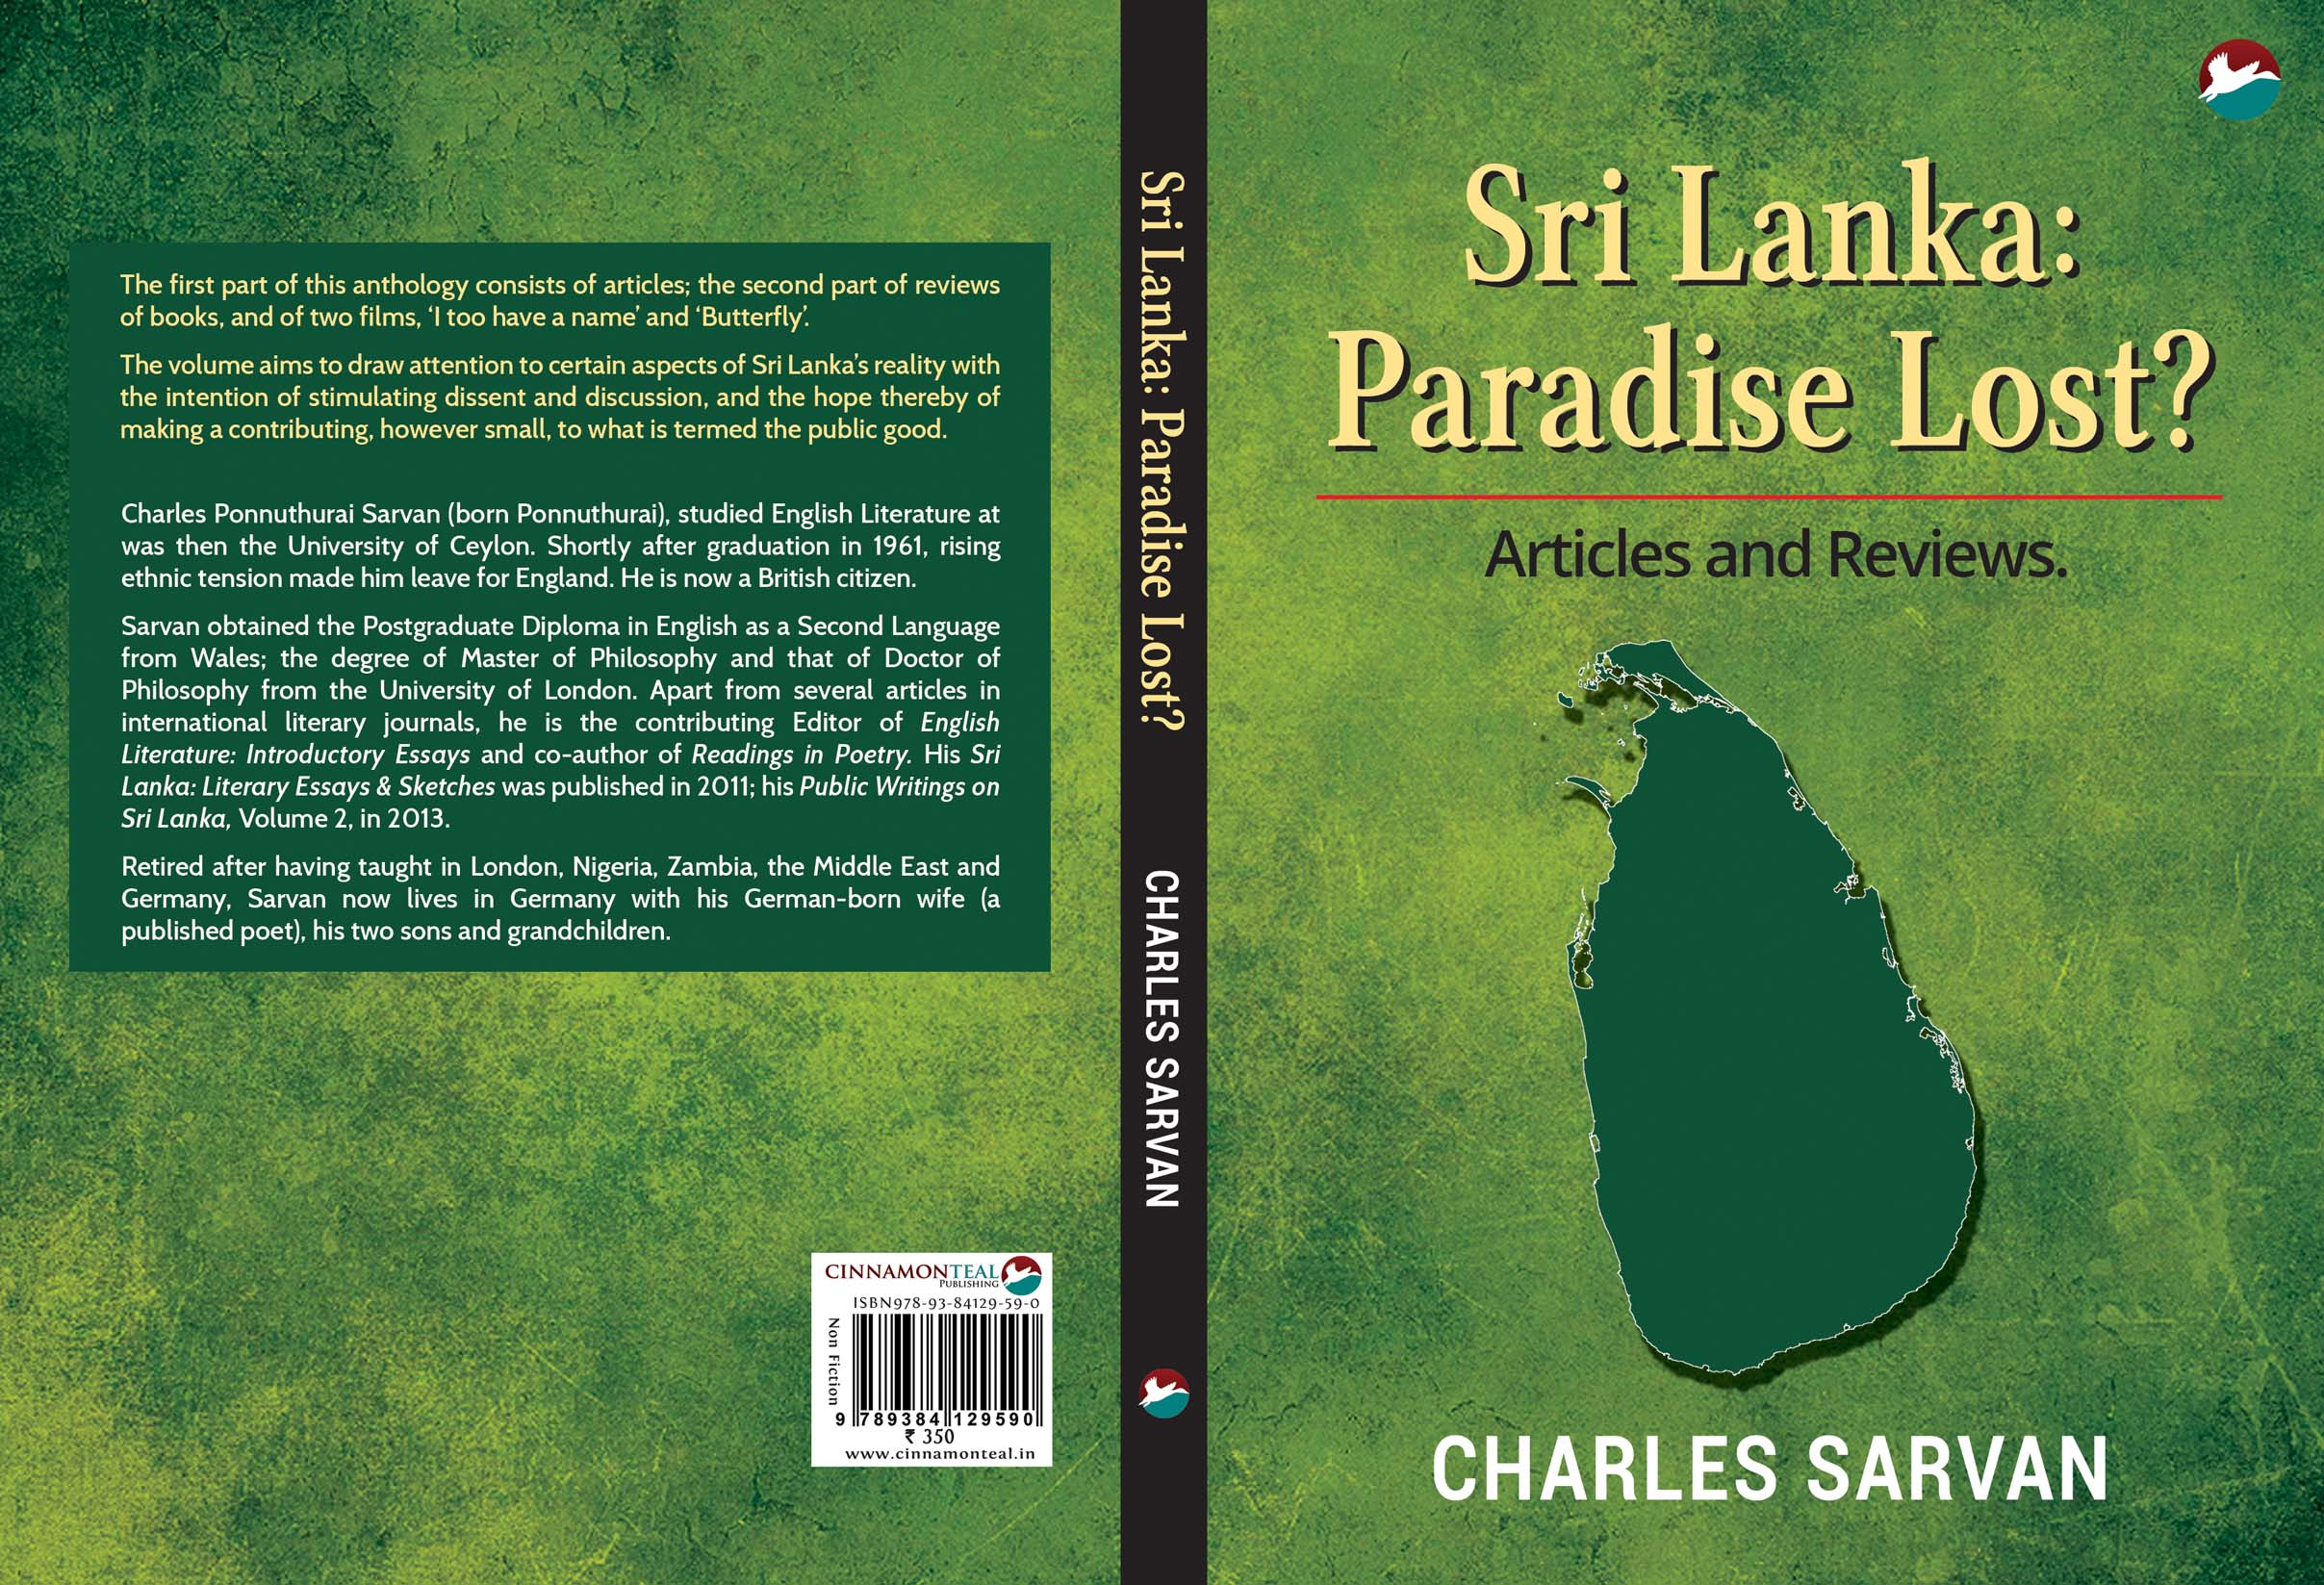 Rural Development In India Essay Charles Sarvans Essays In Sri Lanka  A Paradise Lost Future Plan Essay also Essay On How I Spent My Holidays Charles Sarvans Essays In Sri Lanka  A Paradise Lost  Thuppahis  Quality Essays